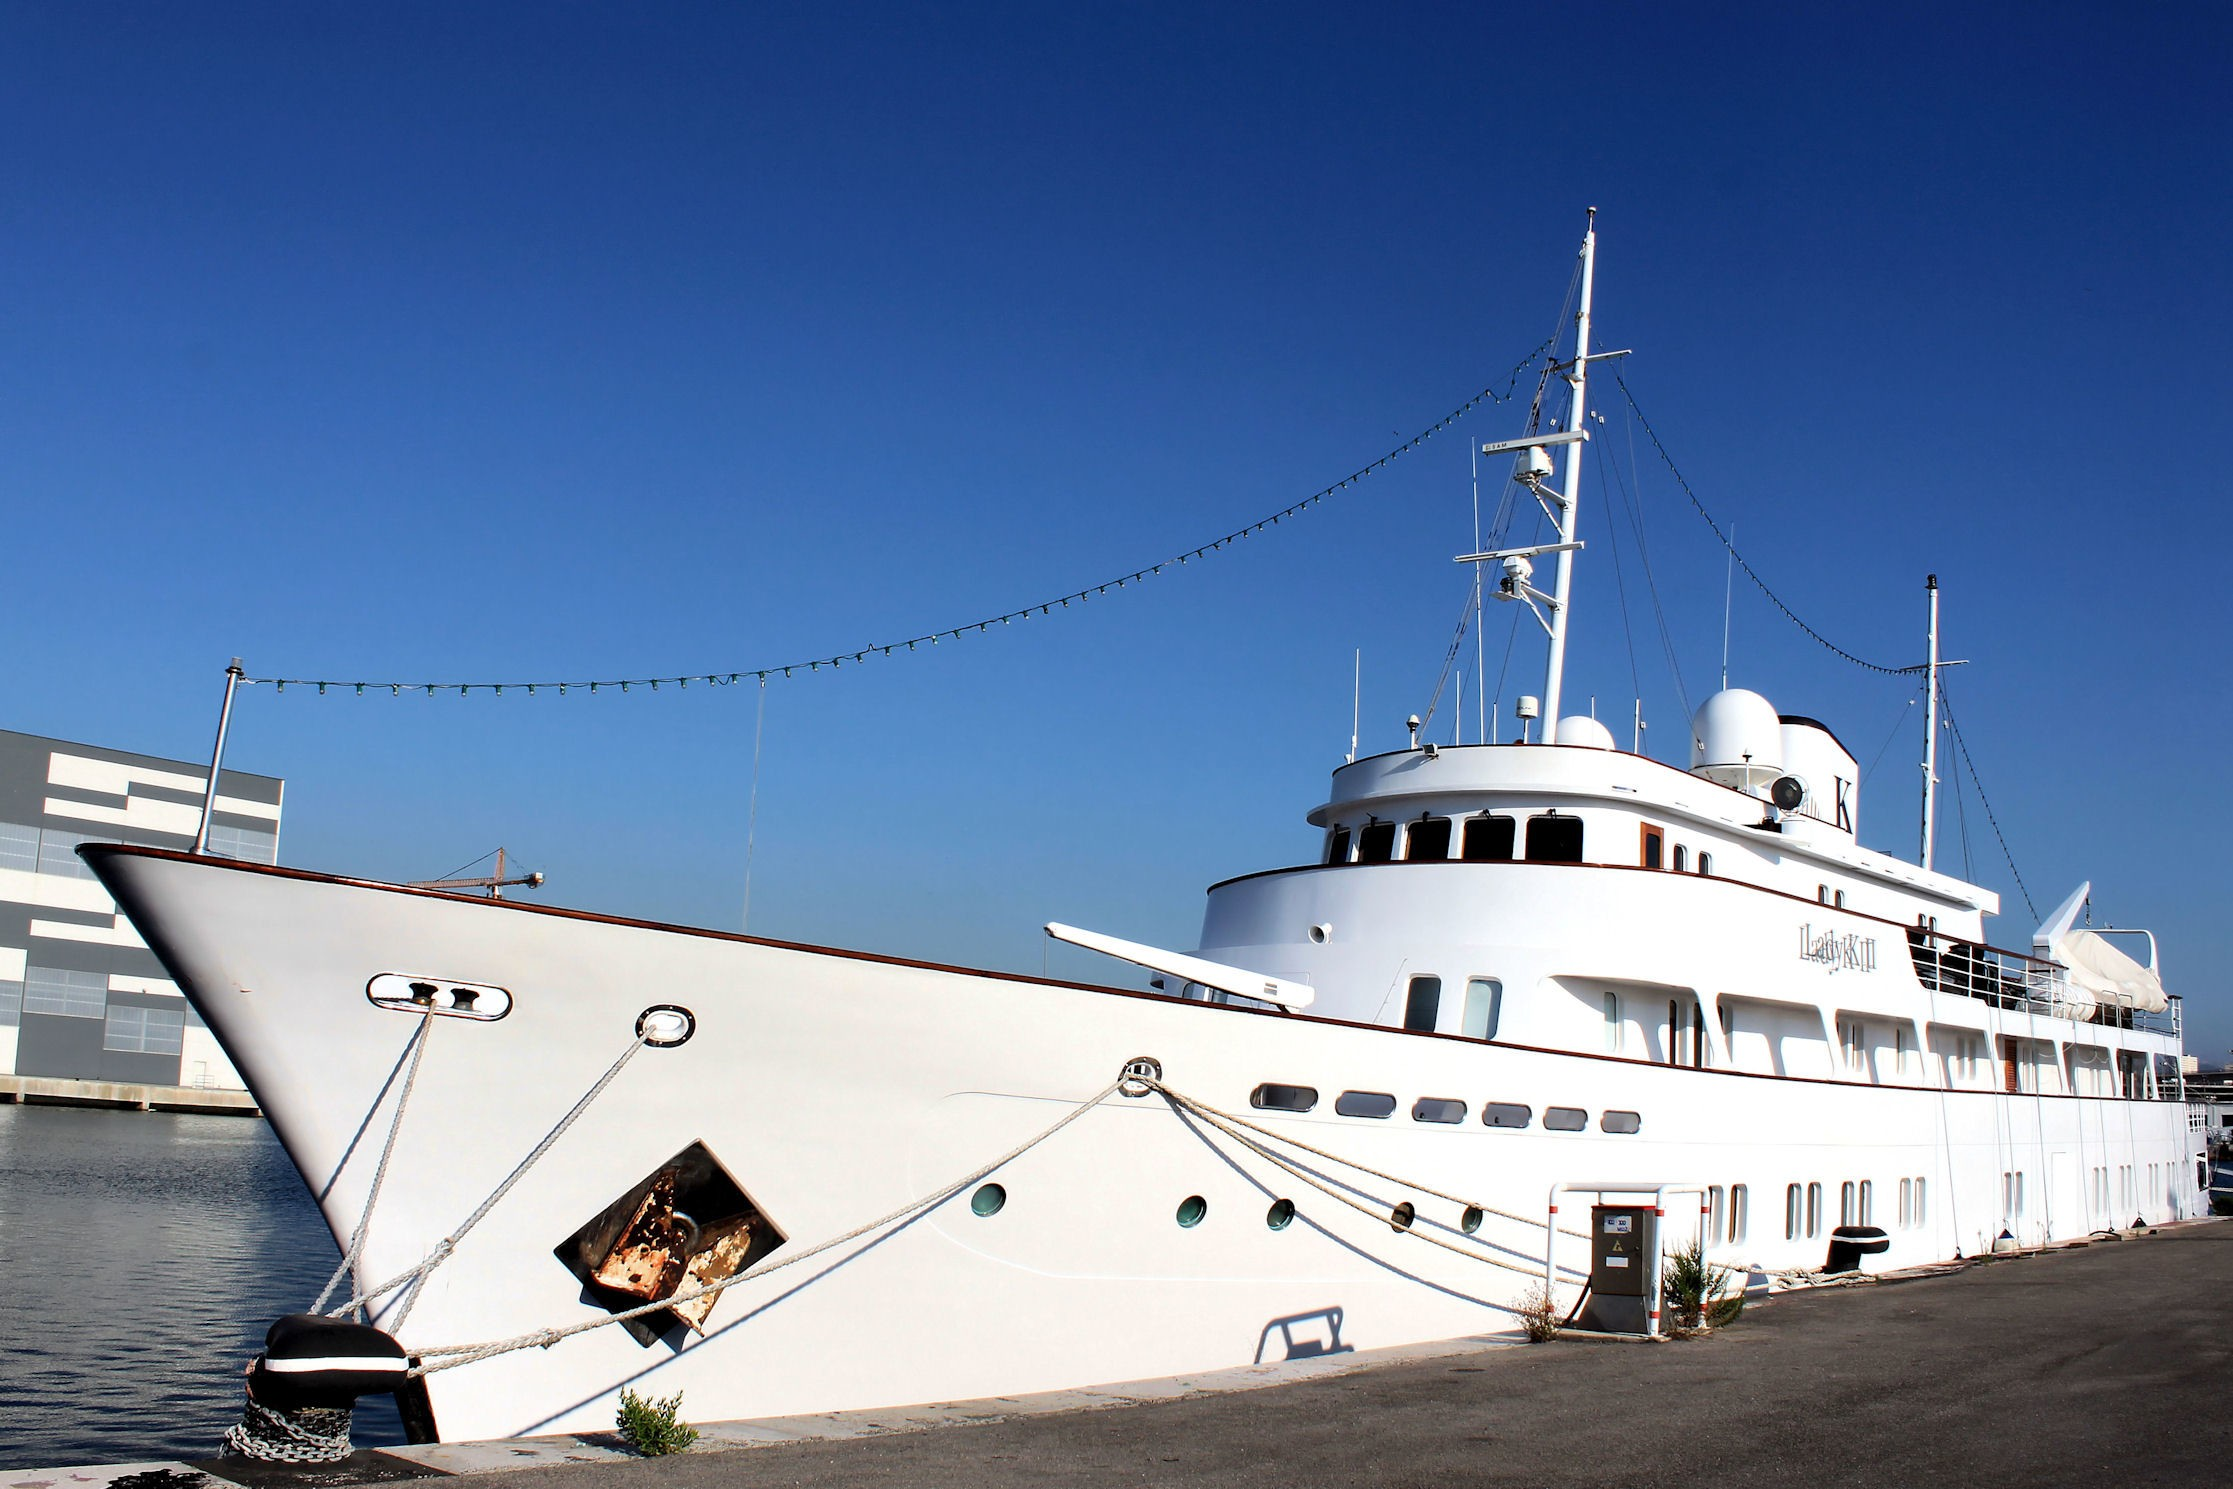 The 57m Yacht LADY K II